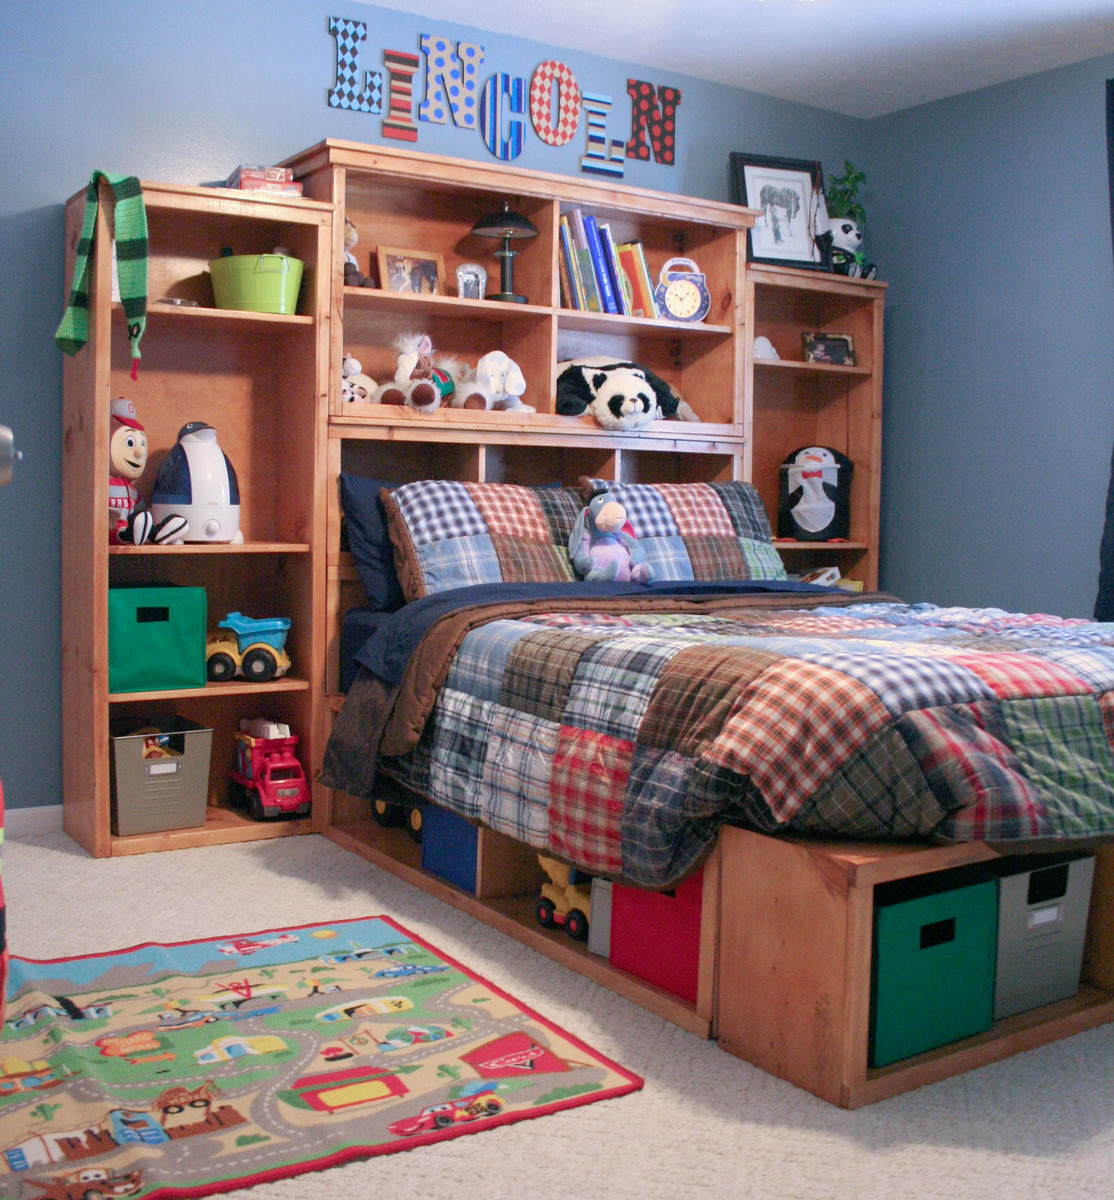 Bookcase Around Bed: Full Size Storage Bed - DIY Projects